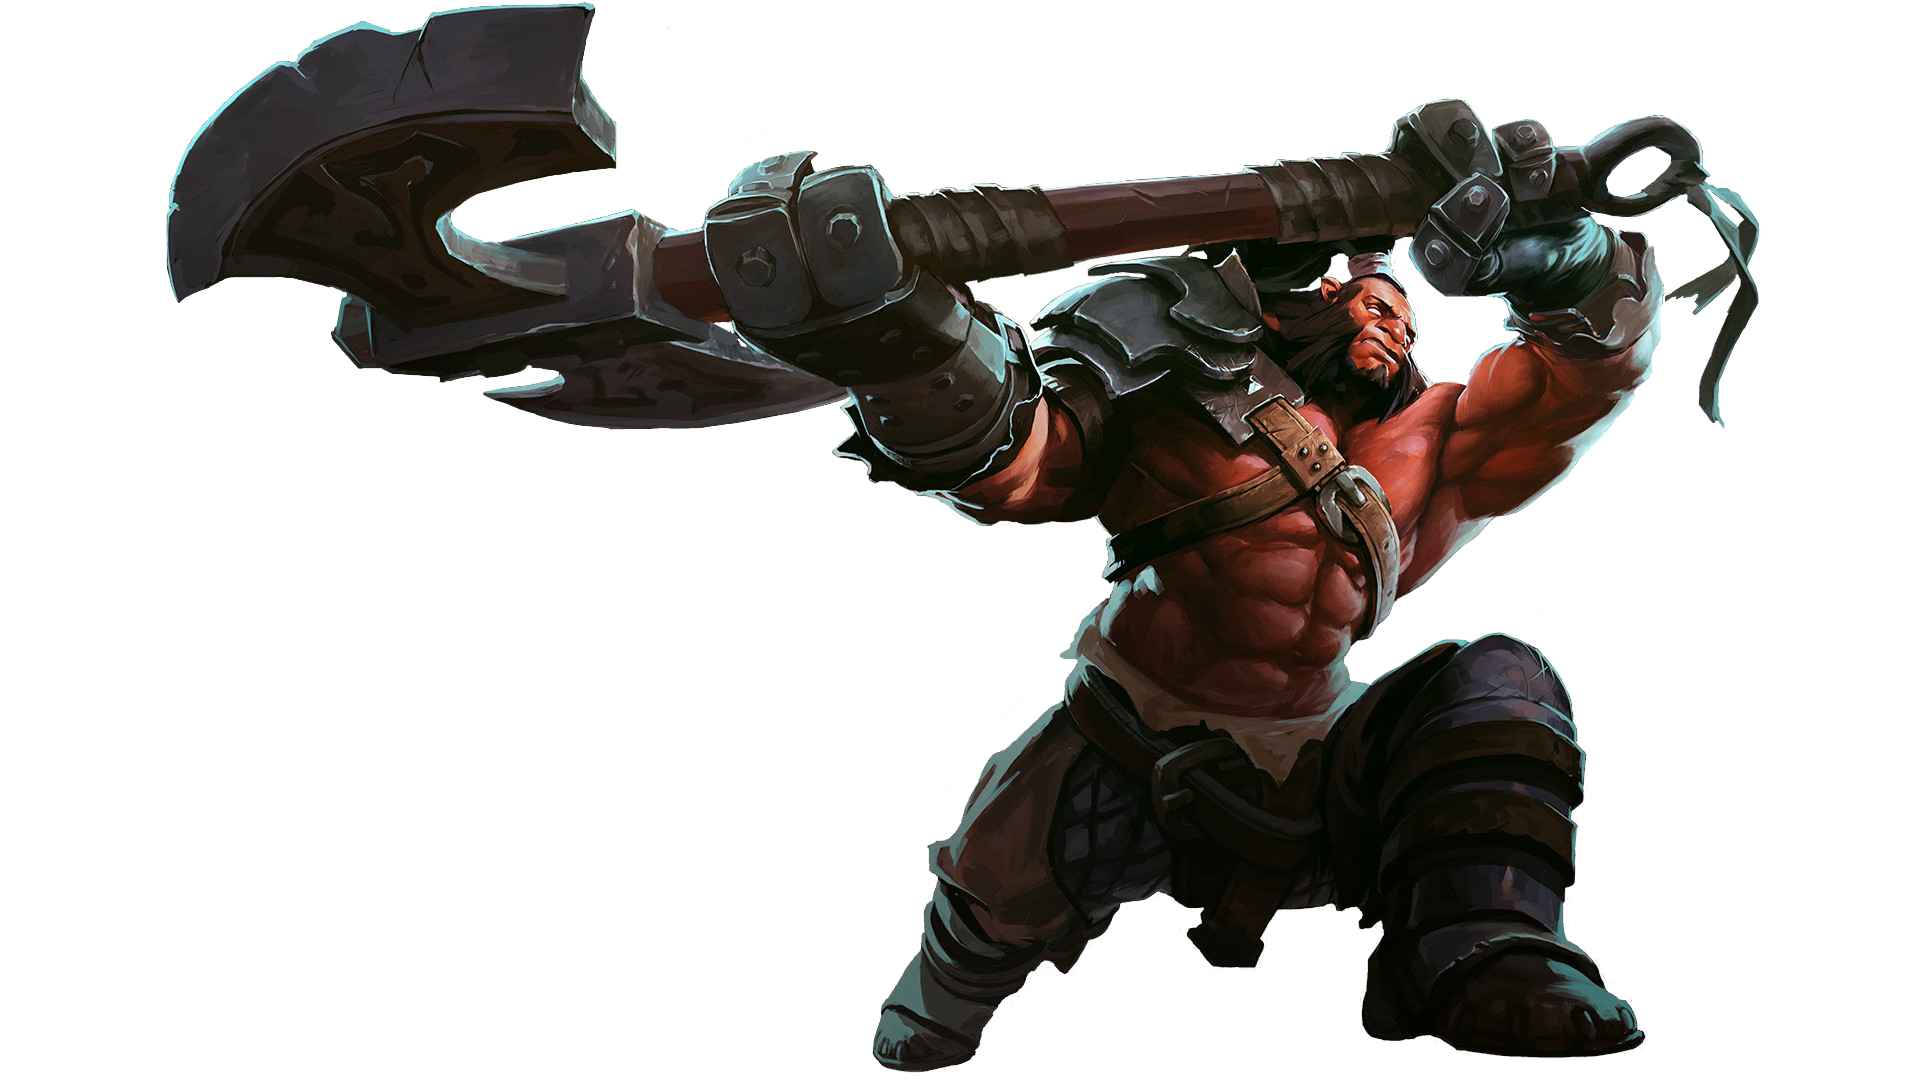 Dota 2 characters png. Mogul khan axe projects